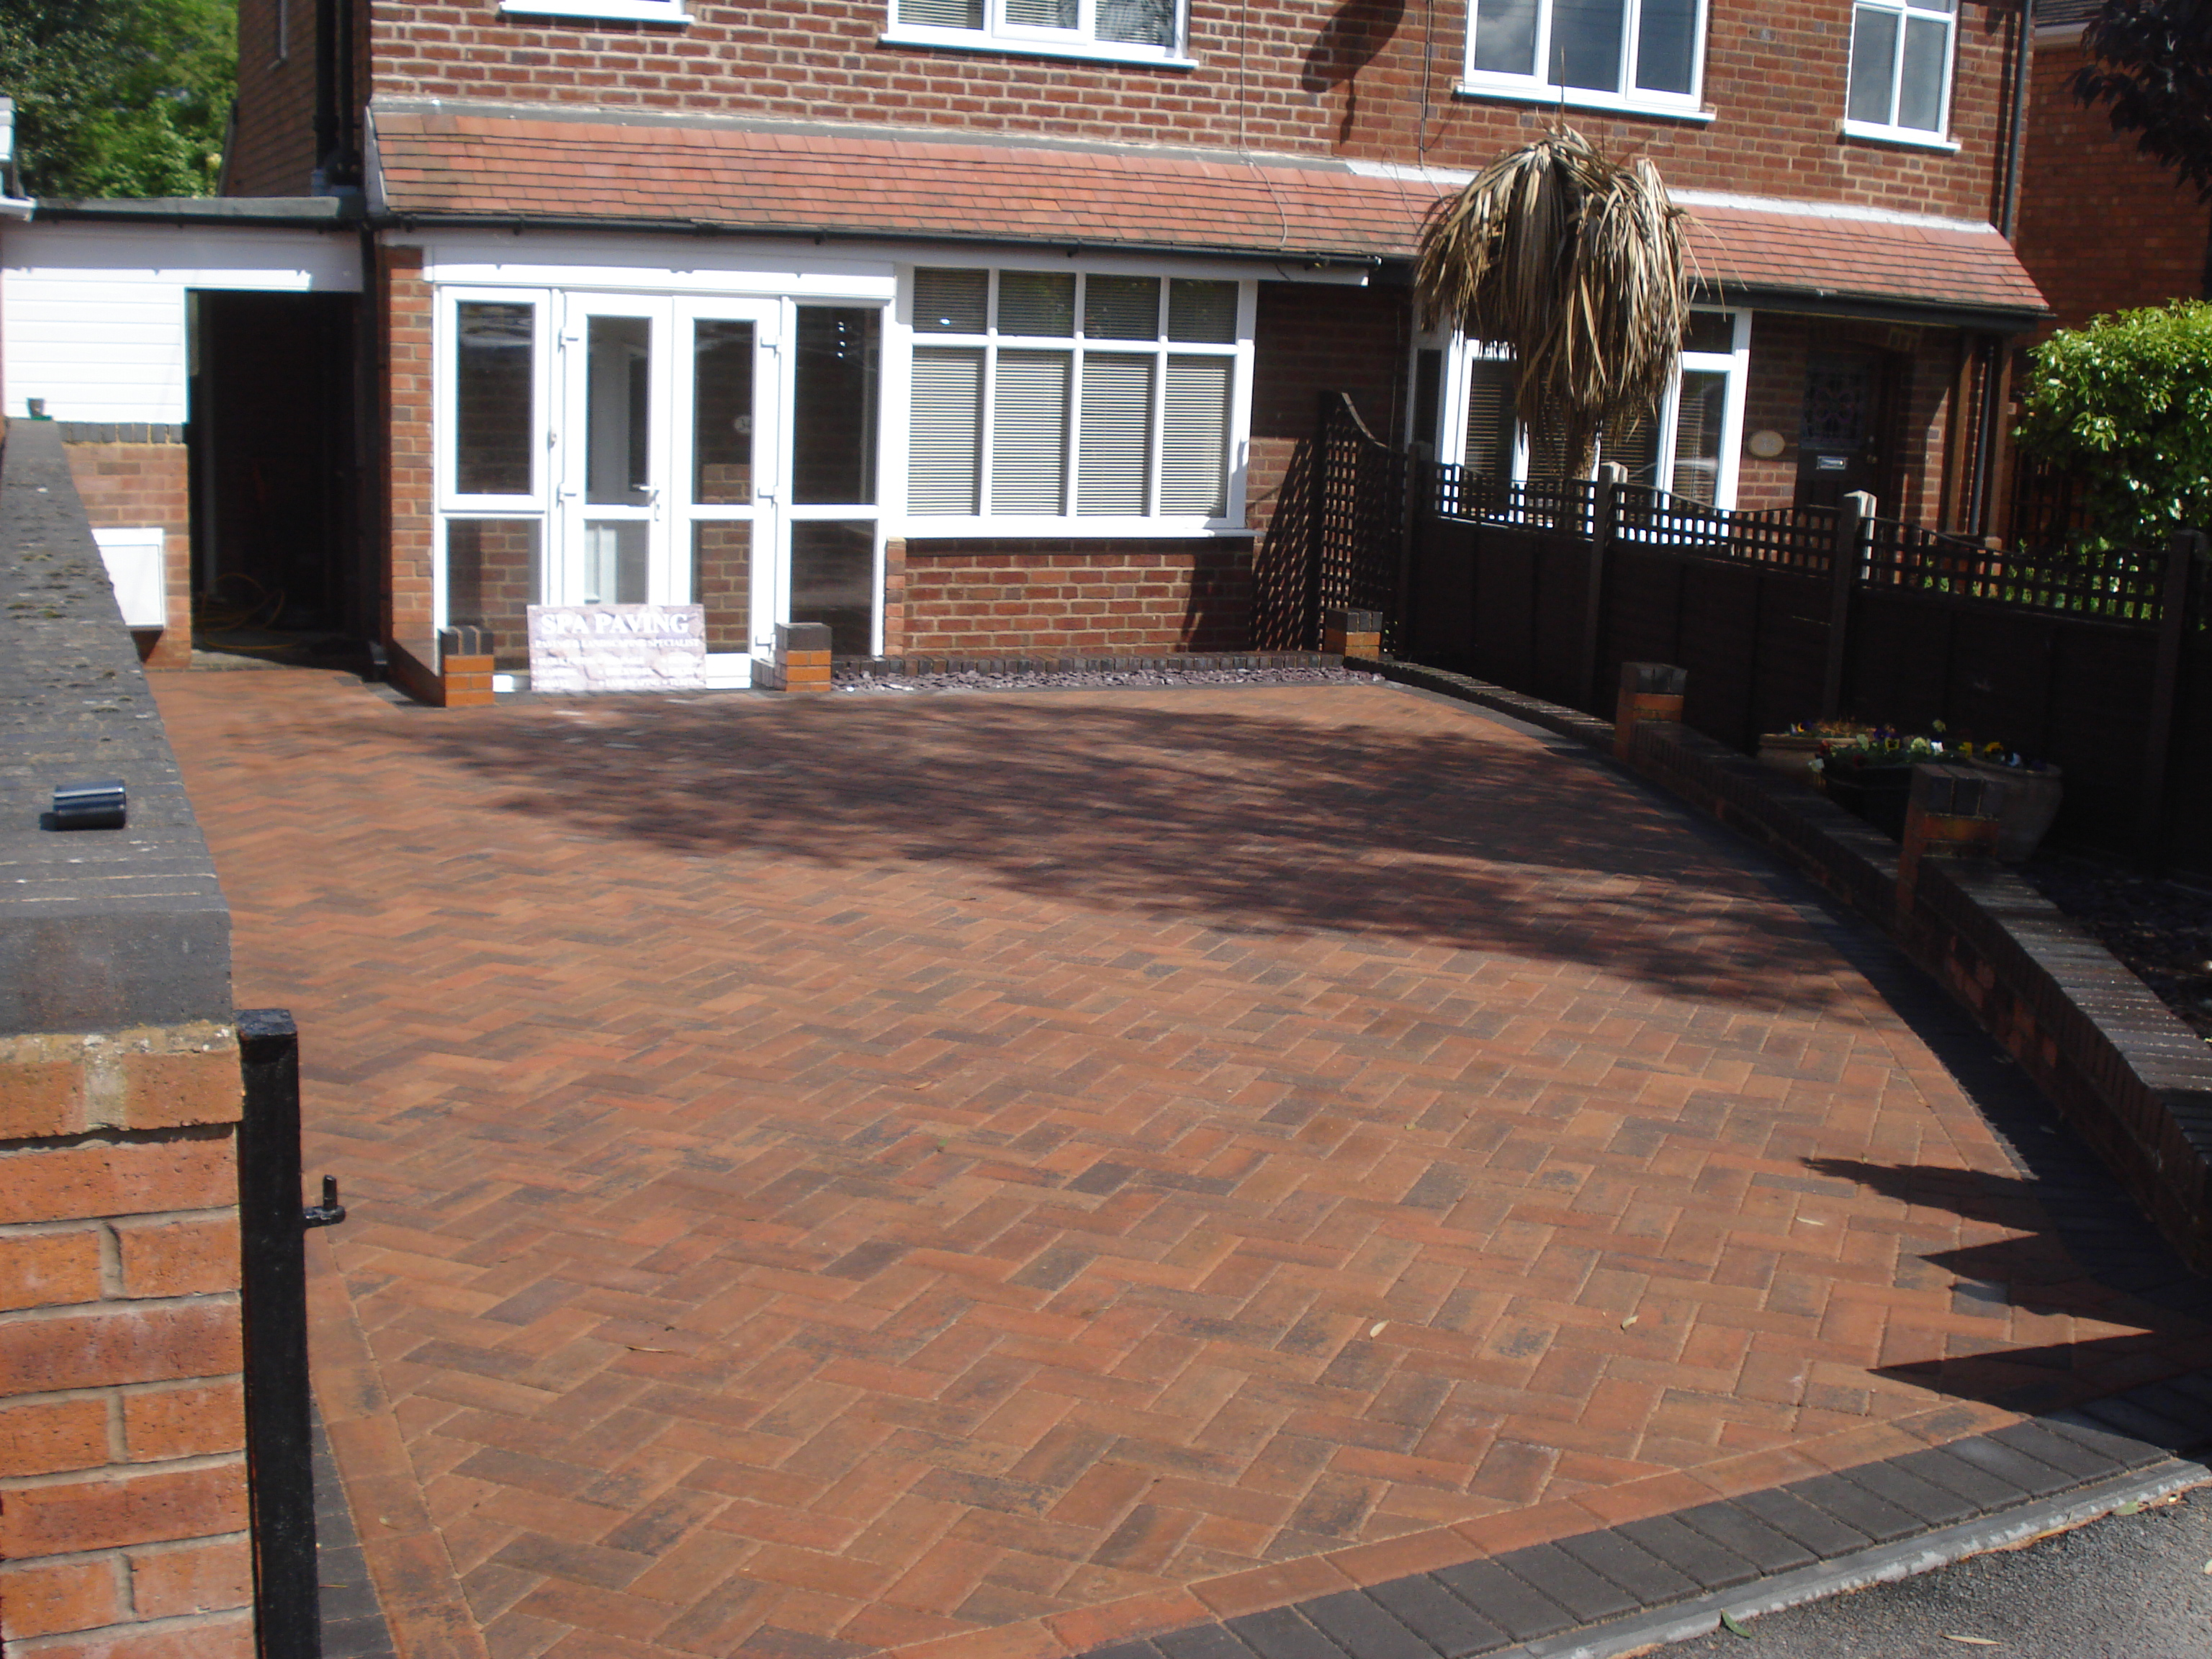 SPA paving - Gravel to paved worcester